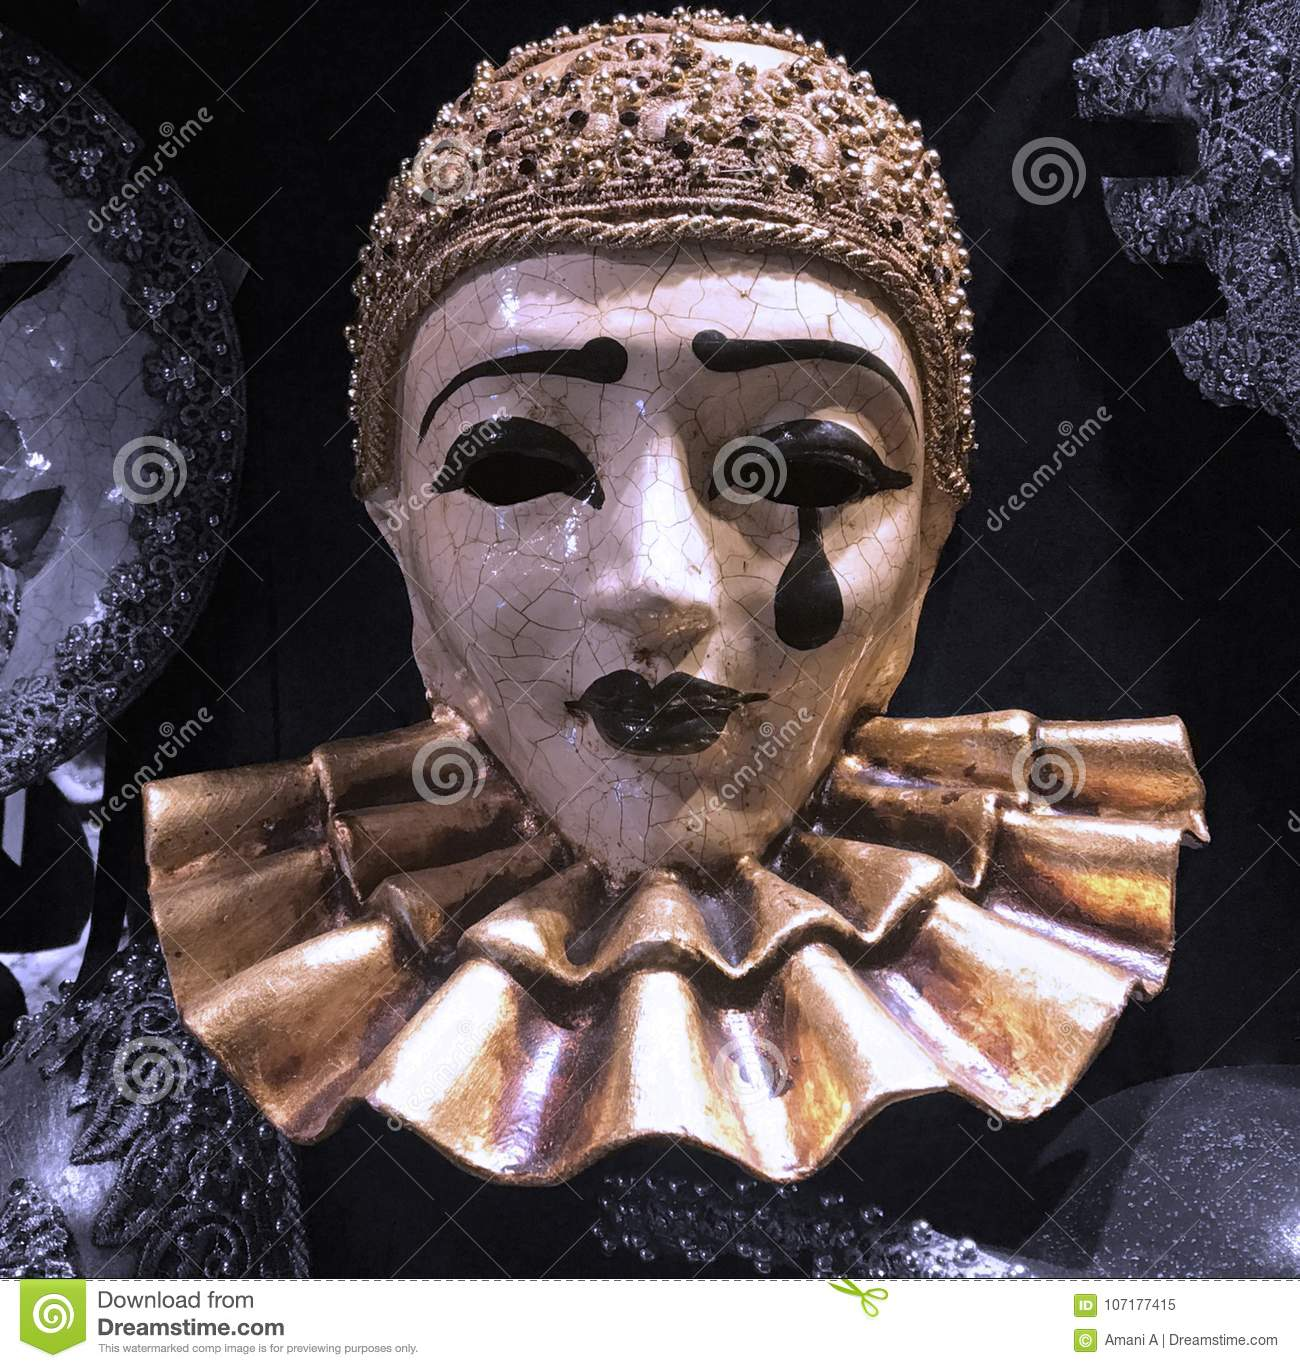 Download comp  sc 1 st  Dreamstime.com & Pierrot Masquerade Costume Mask For Sale In A Traditional Venetian ...